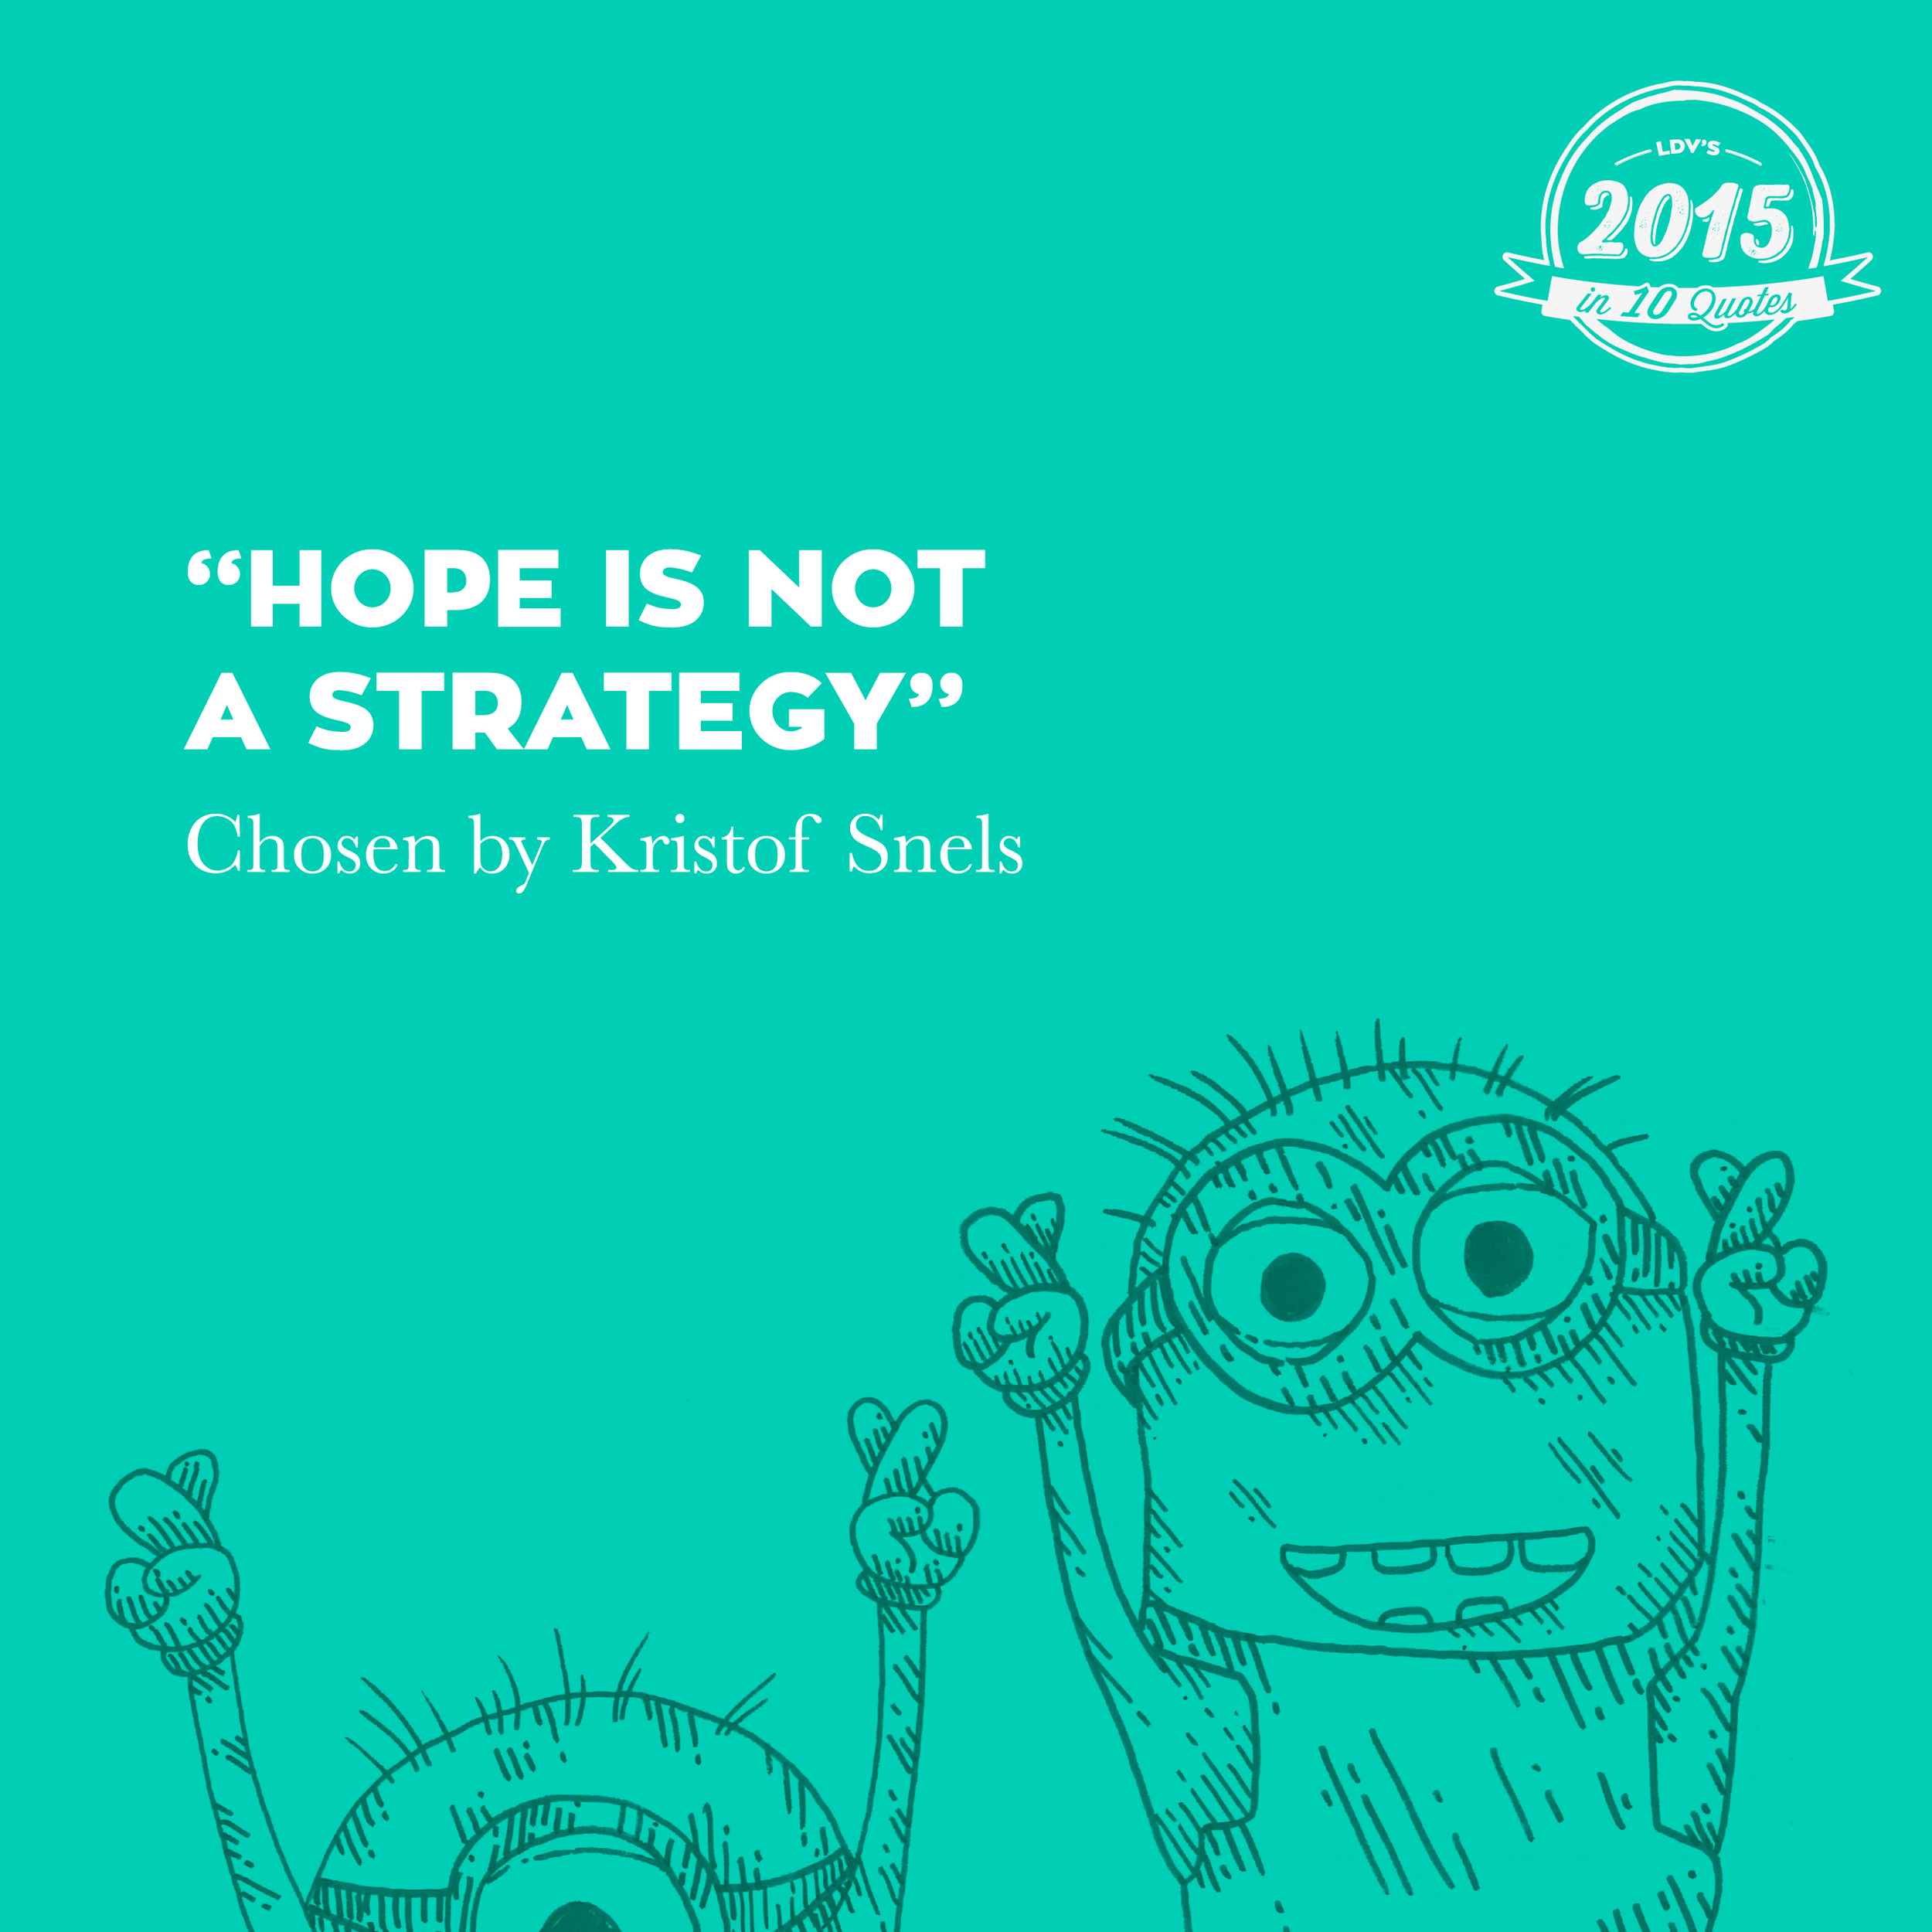 """""""Hope is not a strategy"""" – Kristof Snels  Once said by Facebook's Head of Marketing, but a universal truth nonetheless. Creating something smart, implementing it and then sitting with your fingers crossed is asking to fail. Wishing for a good result gets you nowhere. Be prepared and well considered. #2015in10quotes #thisisLDV       Normal   0       21       false   false   false     EN-US   JA   X-NONE                                                                                                                                                                                                                                                                                                                                                                                                                                                                                                                                                                                                                                                                                                                                                                                                                                                          /* Style Definitions */  table.MsoNormalTable {mso-style-name:""""Table Normal""""; mso-tstyle-rowband-size:0; mso-tstyle-colband-size:0; mso-style-noshow:yes; mso-style-priority:99; mso-style-parent:""""""""; mso-padding-alt:0cm 5.4pt 0cm 5.4pt; mso-para-margin:0cm; mso-para-margin-bottom:.0001pt; mso-pagination:widow-orphan; font-size:12.0pt; font-family:""""Calibri"""",sans-serif; mso-ascii-font-family:Calibri; mso-ascii-theme-font:minor-latin; mso-hansi-font-family:Calibri; mso-hansi-theme-font:minor-latin; mso-bidi-font-family:""""Times New Roman""""; mso-bidi-theme-font:minor-bidi; mso-ansi-language:EN-US; mso-fareast-language:EN-US;}"""